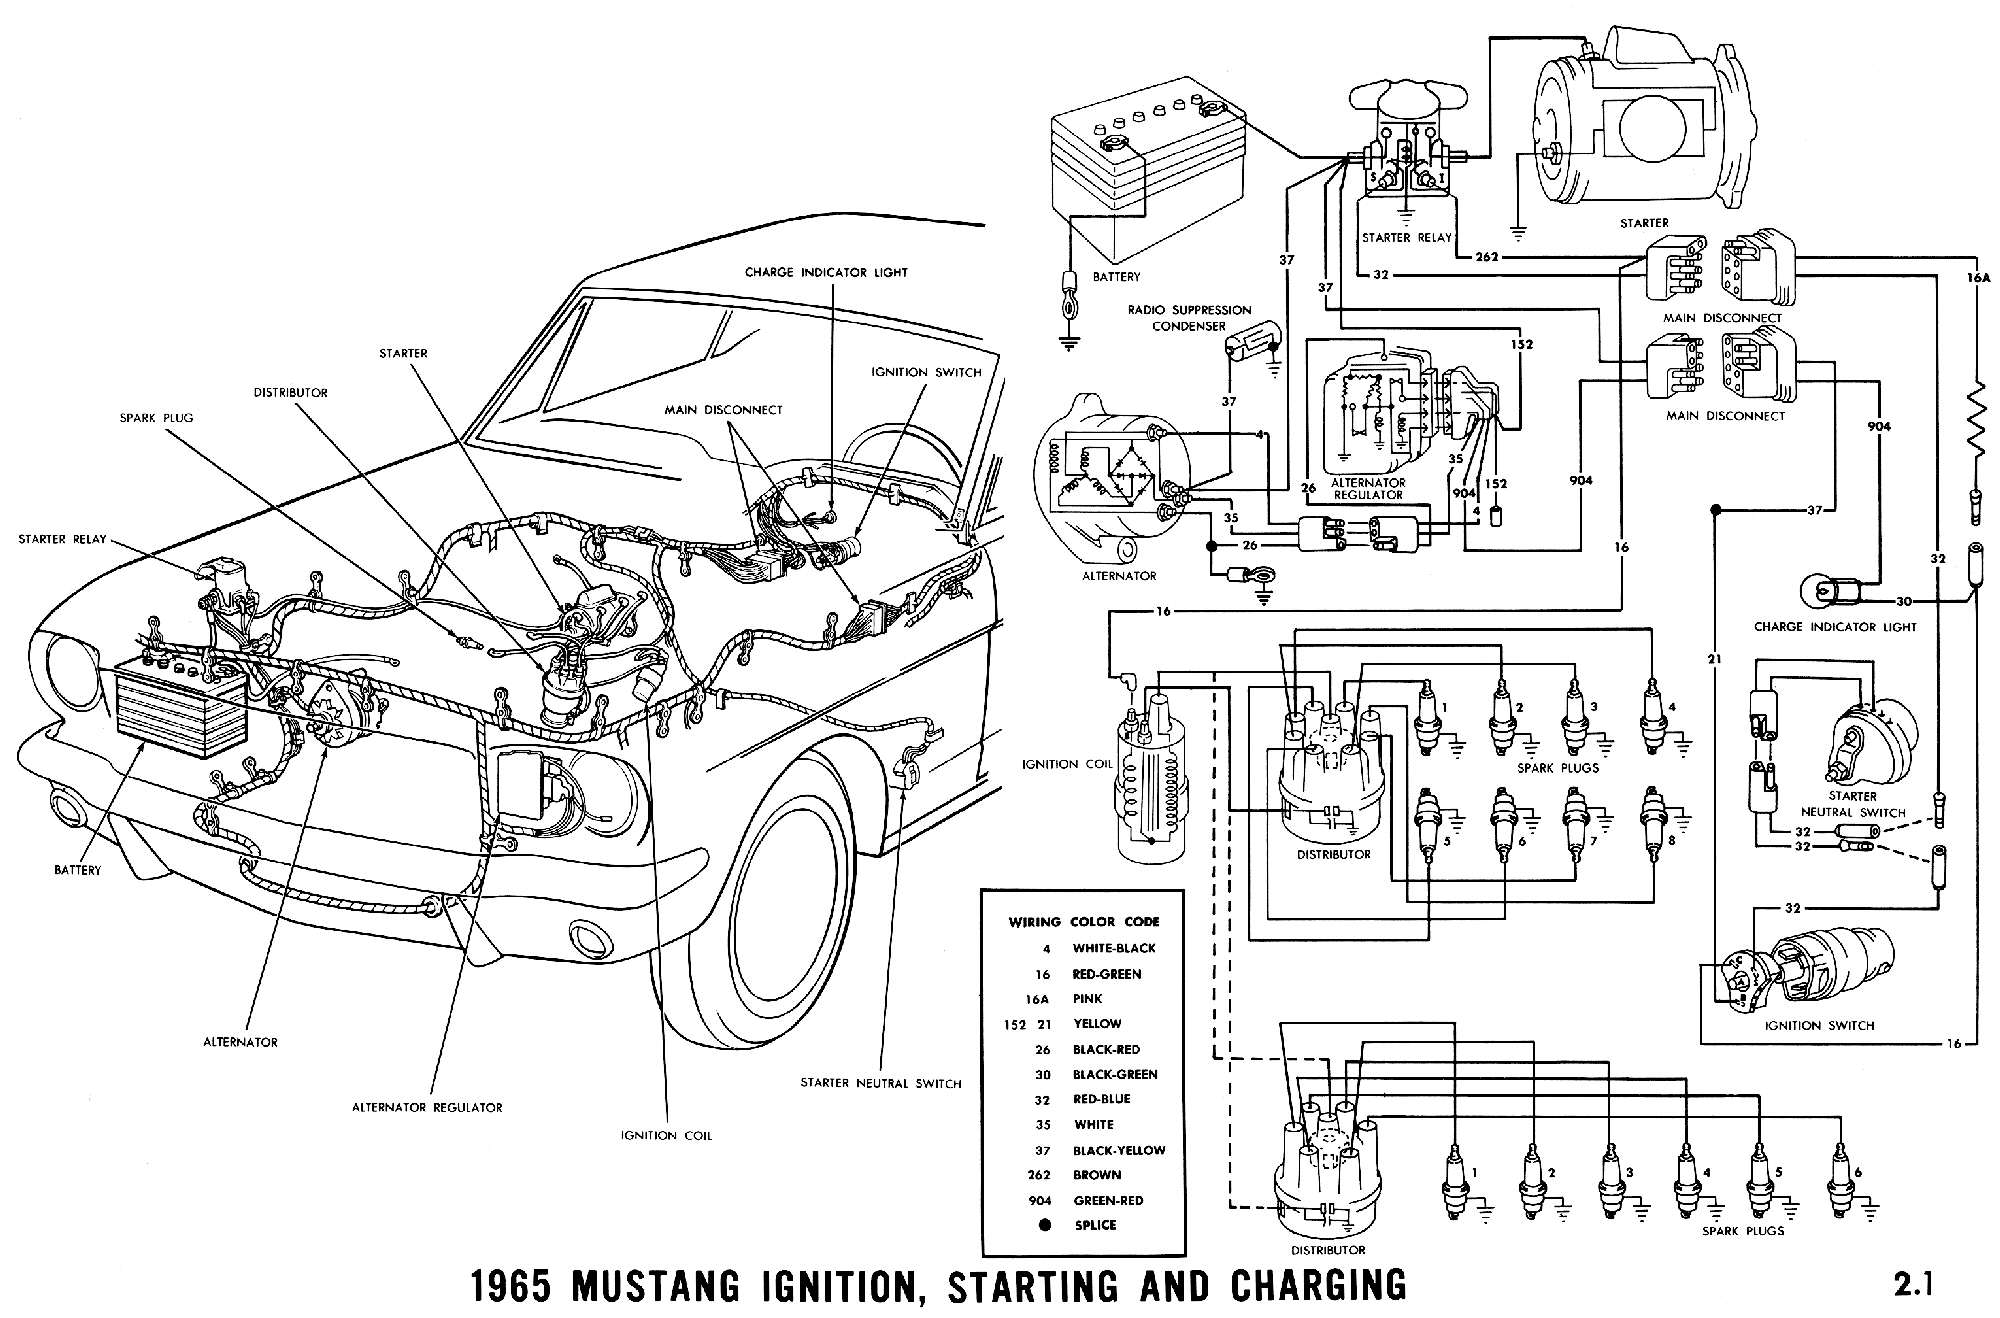 1965 mustang wiring diagram pdf wiring diagrams user 1966 Mustang Radio Wiring Diagram